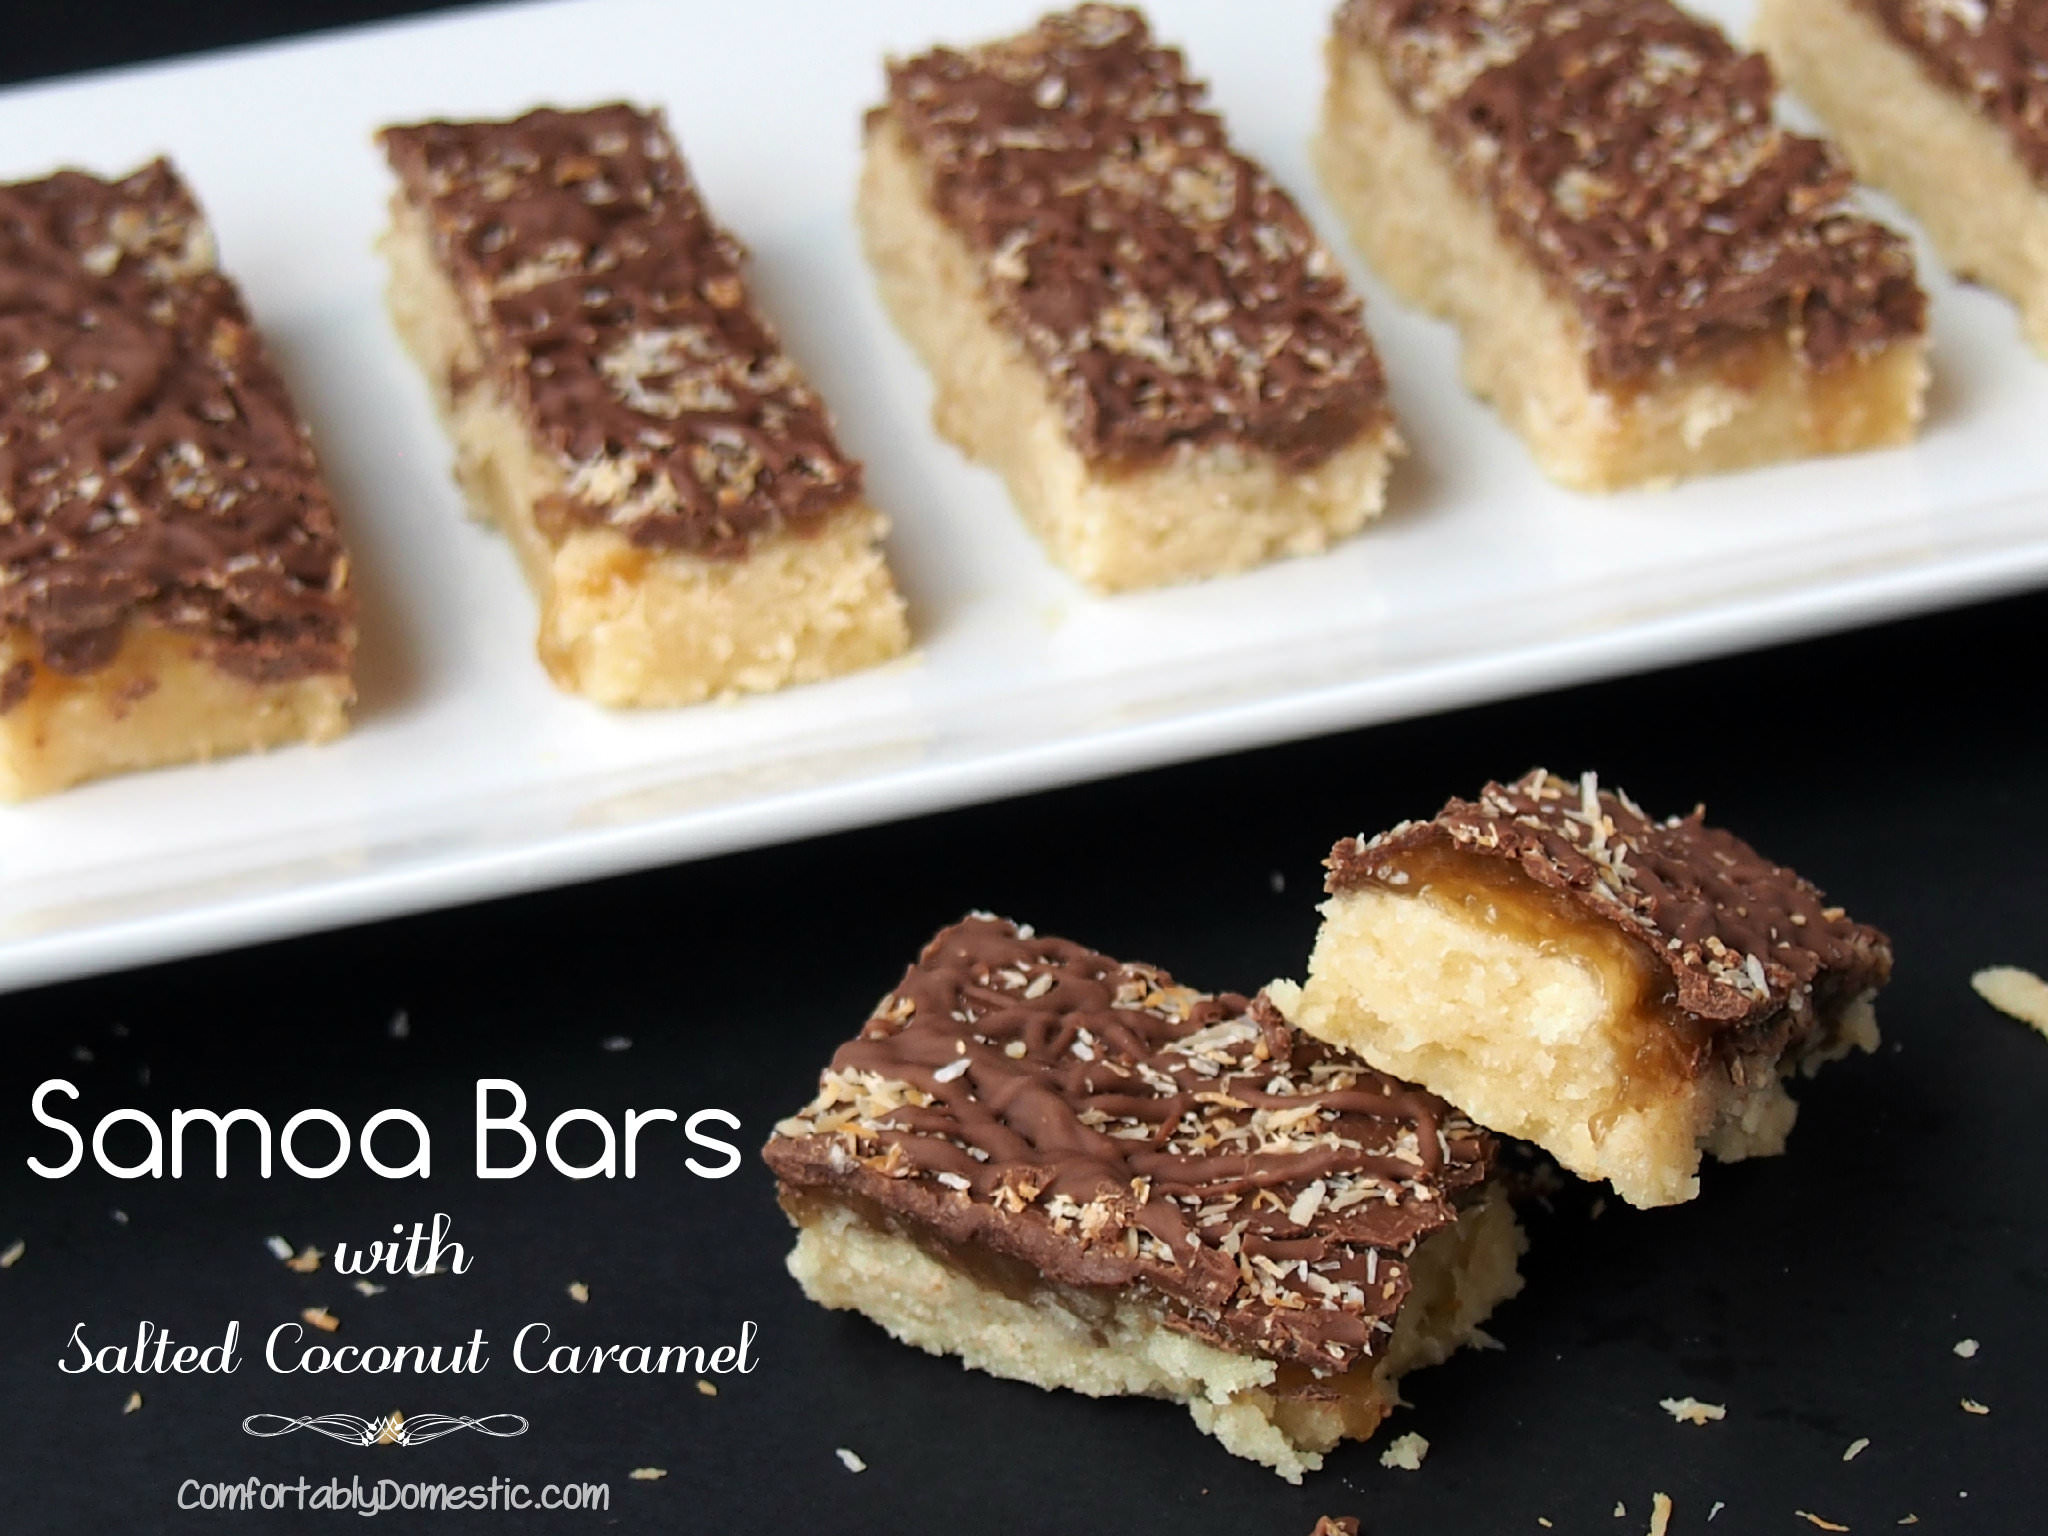 Samoa Bars are reminiscent of the popular Girl Scout Cookie. Crisp, buttery shortbread, smothered with a thin layer of dreamy salted coconut caramel, then topped with rich dark chocolate and toasted coconut. | ComfortablyDomestic.com